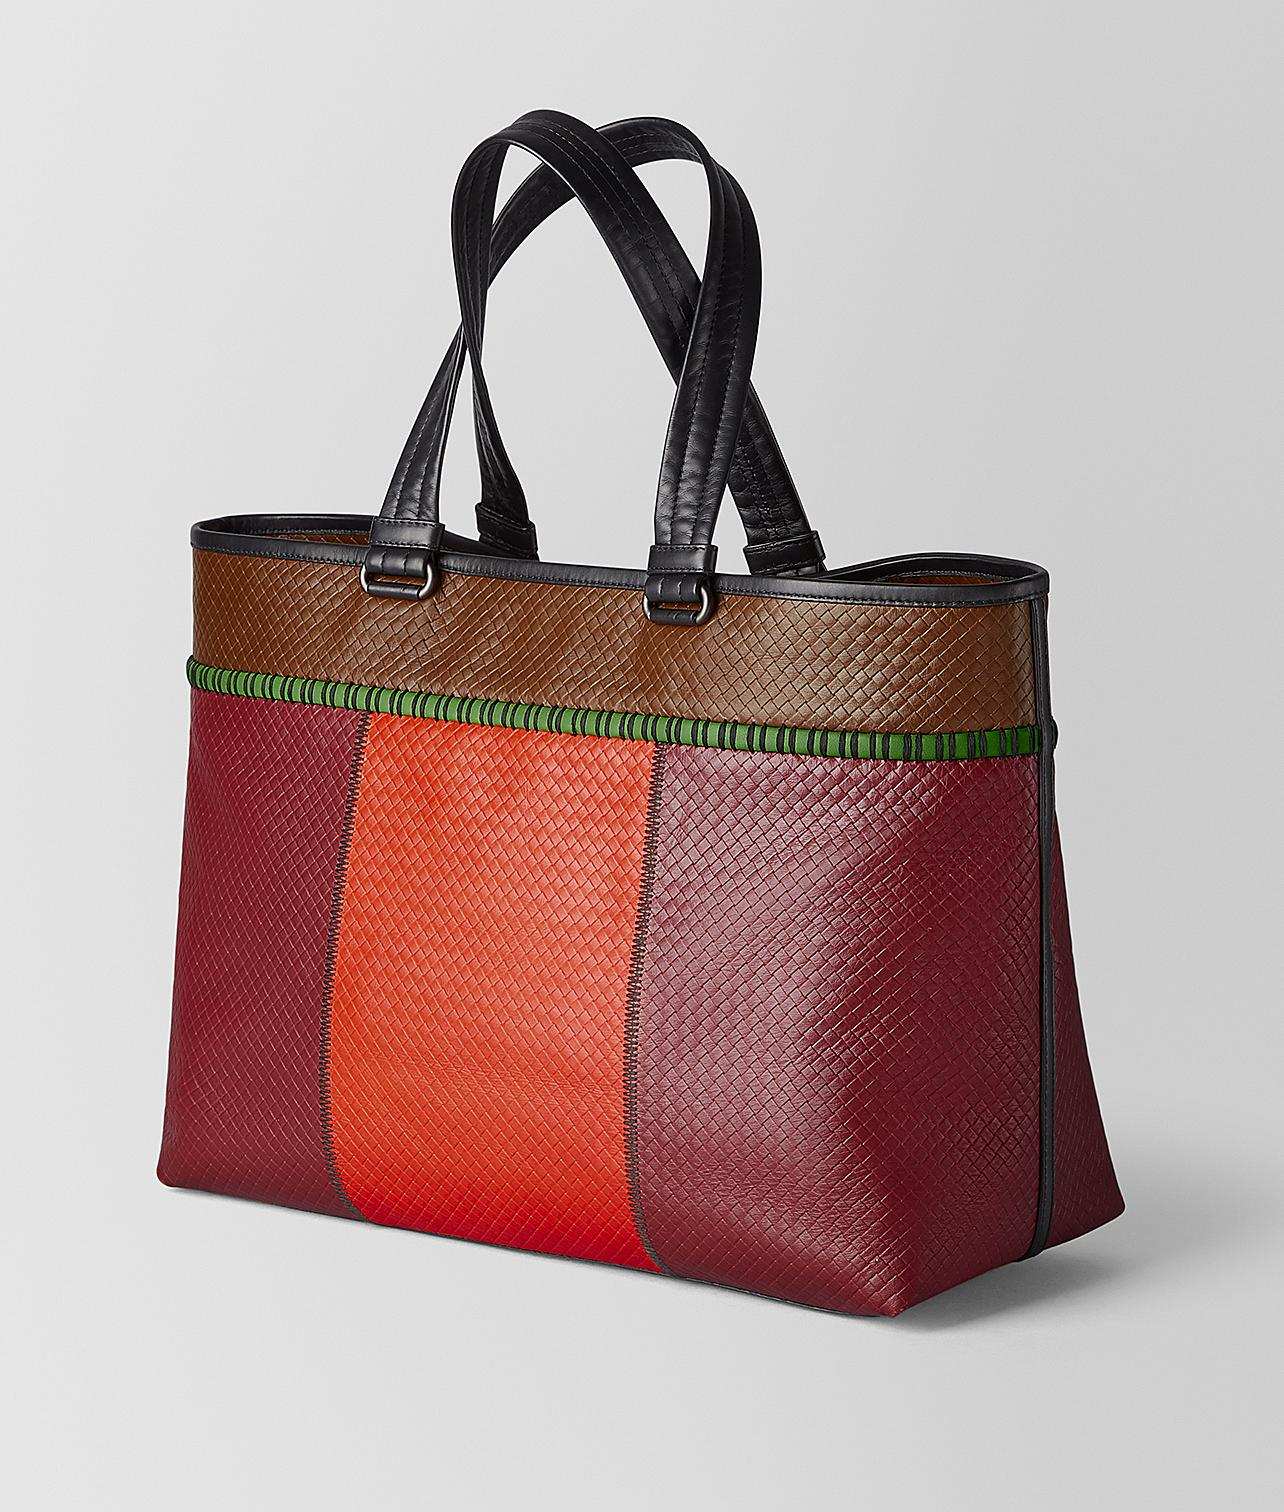 bdc8f6c712 Bottega Veneta Tote In Micro-intrecciato Embossed in Red for Men - Lyst